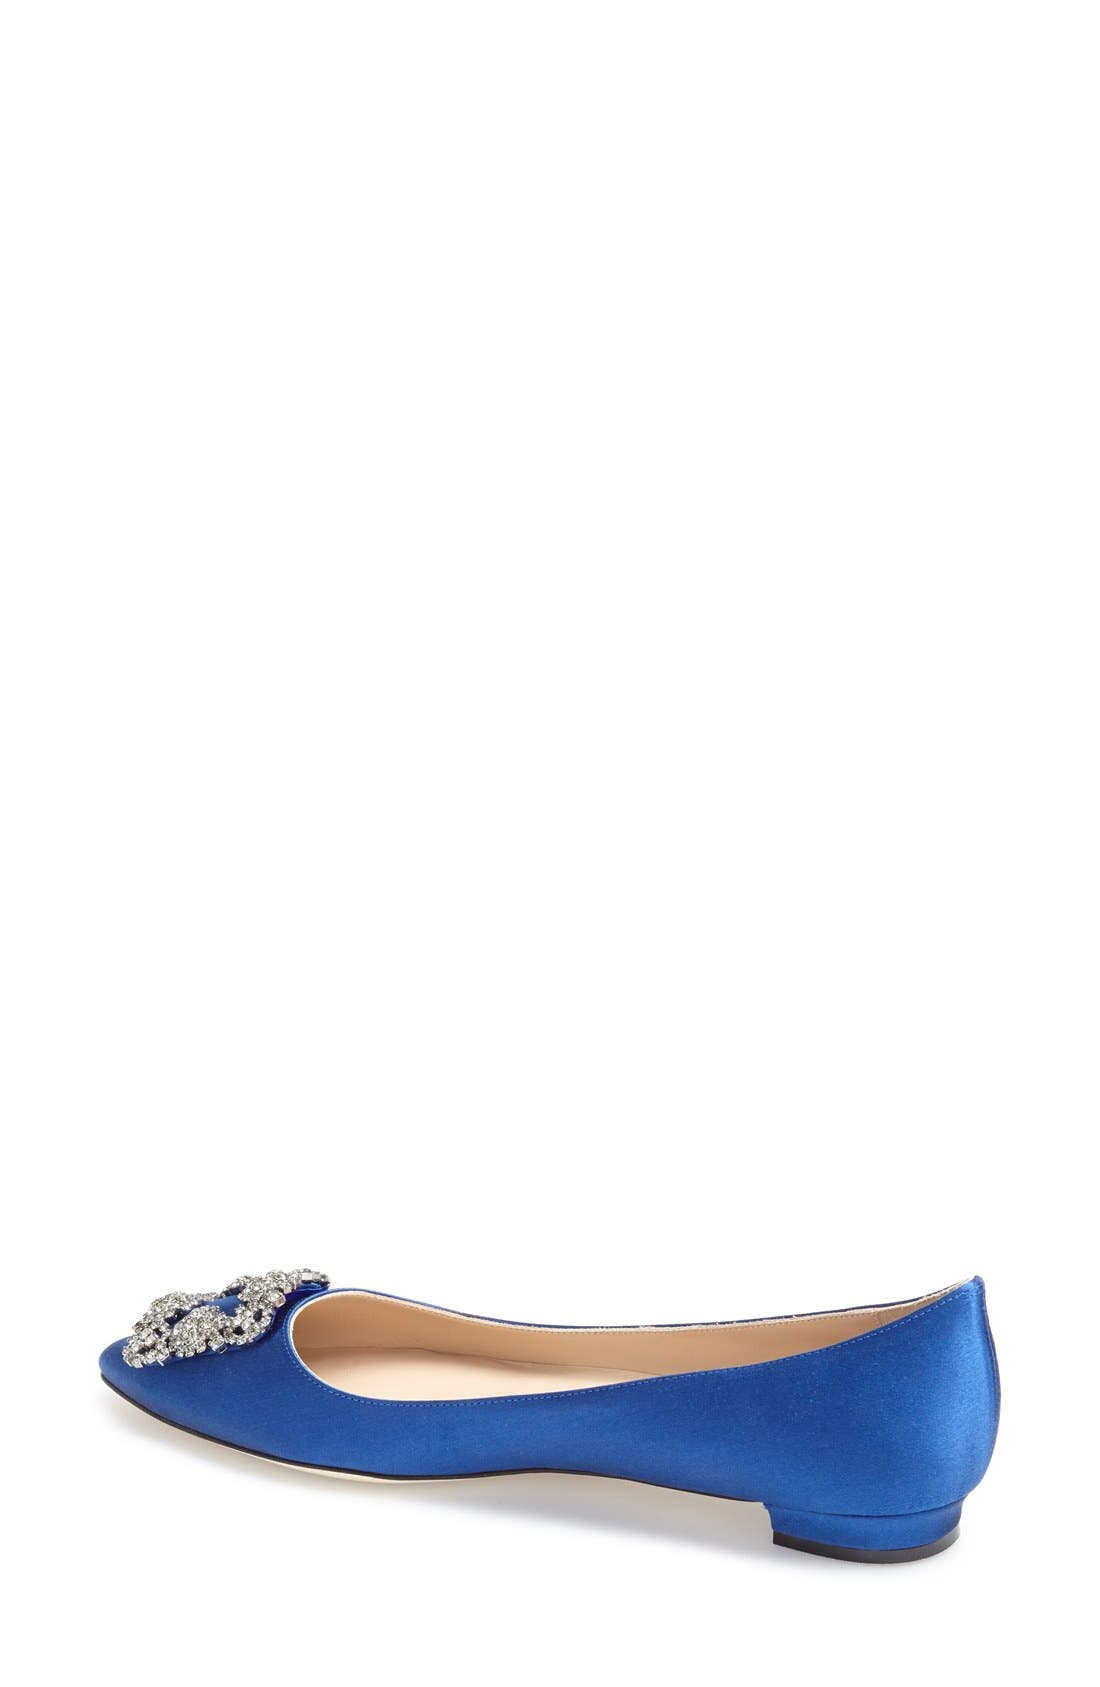 2ade67cac53e2 Women's Pointy-Toe Flats | Nordstrom